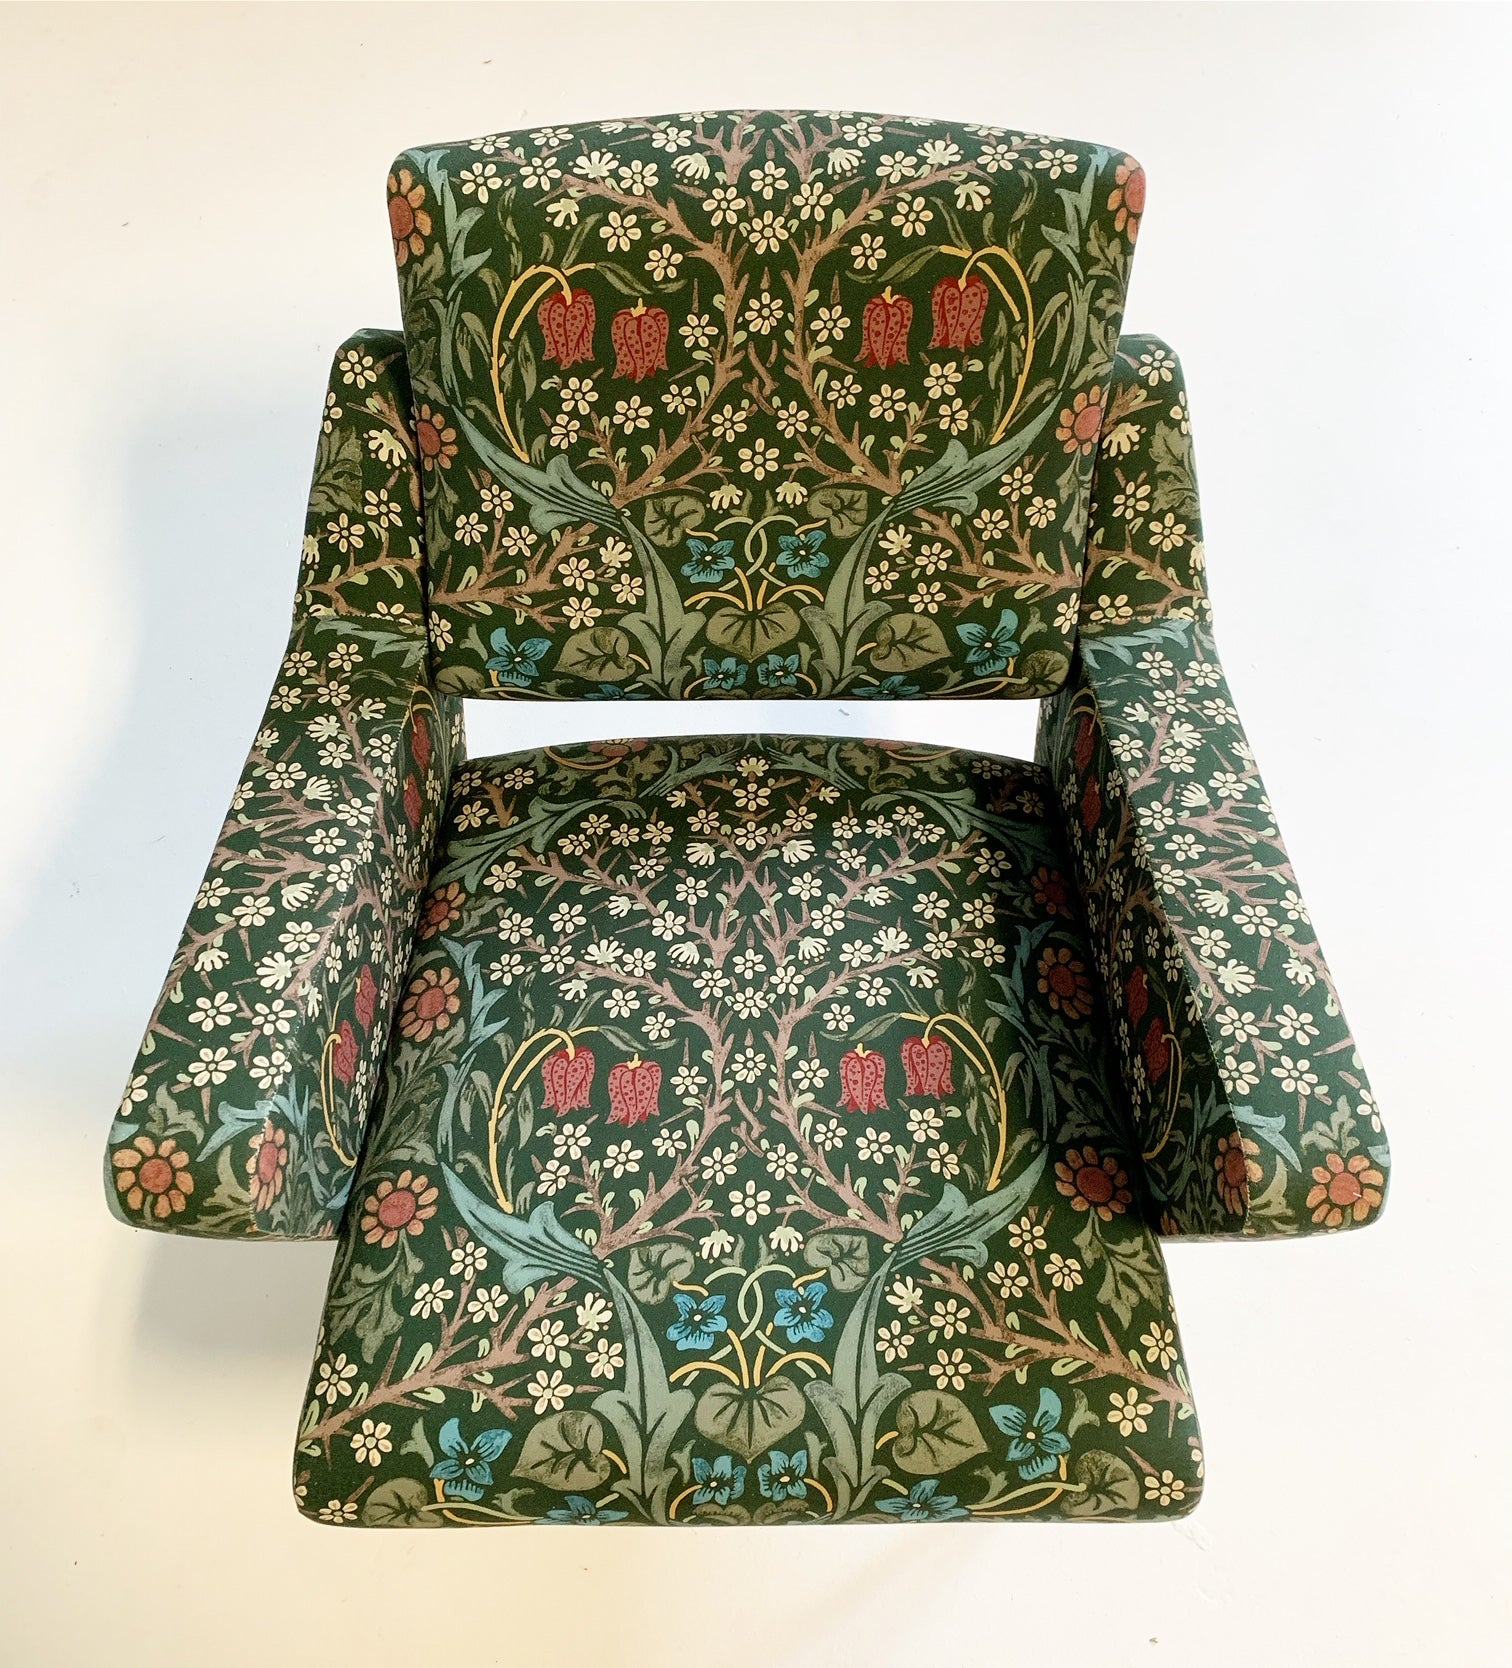 c. 1955 French Lounge Chairs in William Morris Blackthorn, pair - FORSYTH